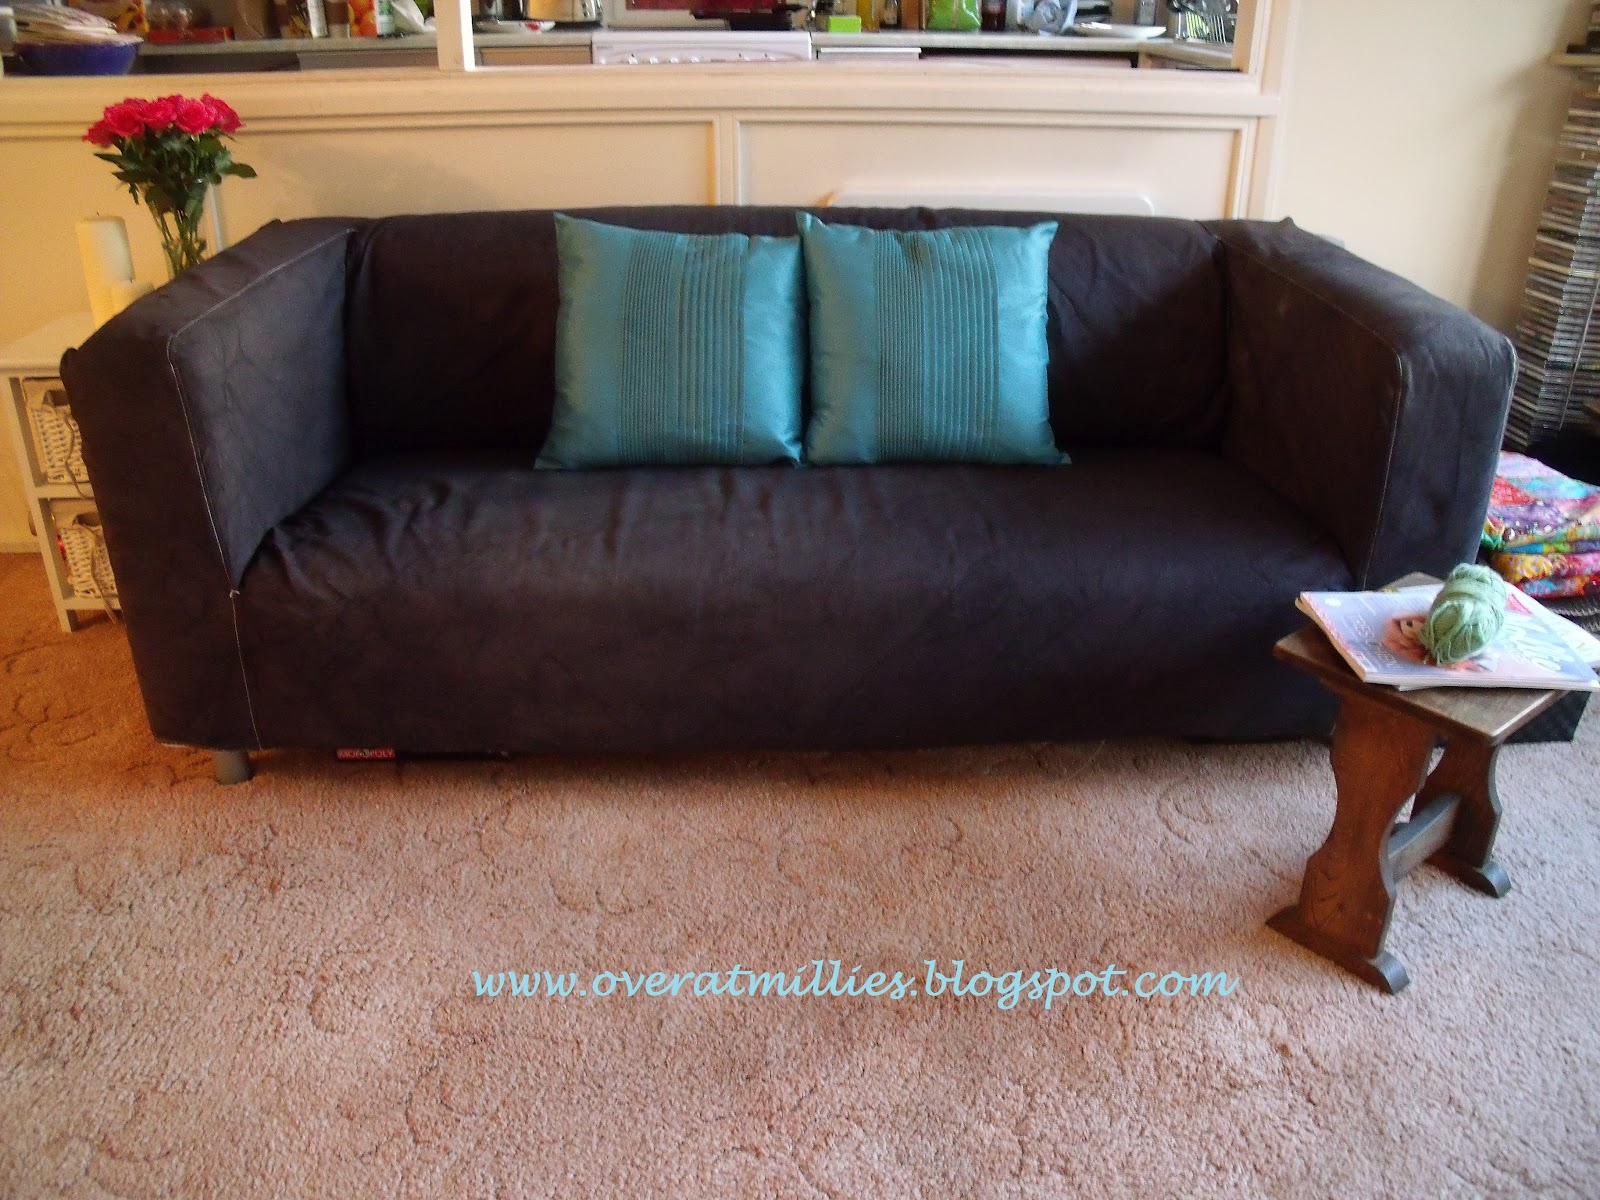 sofa cushions without covers swedish company over at millie 39s how to dye a klippan cover